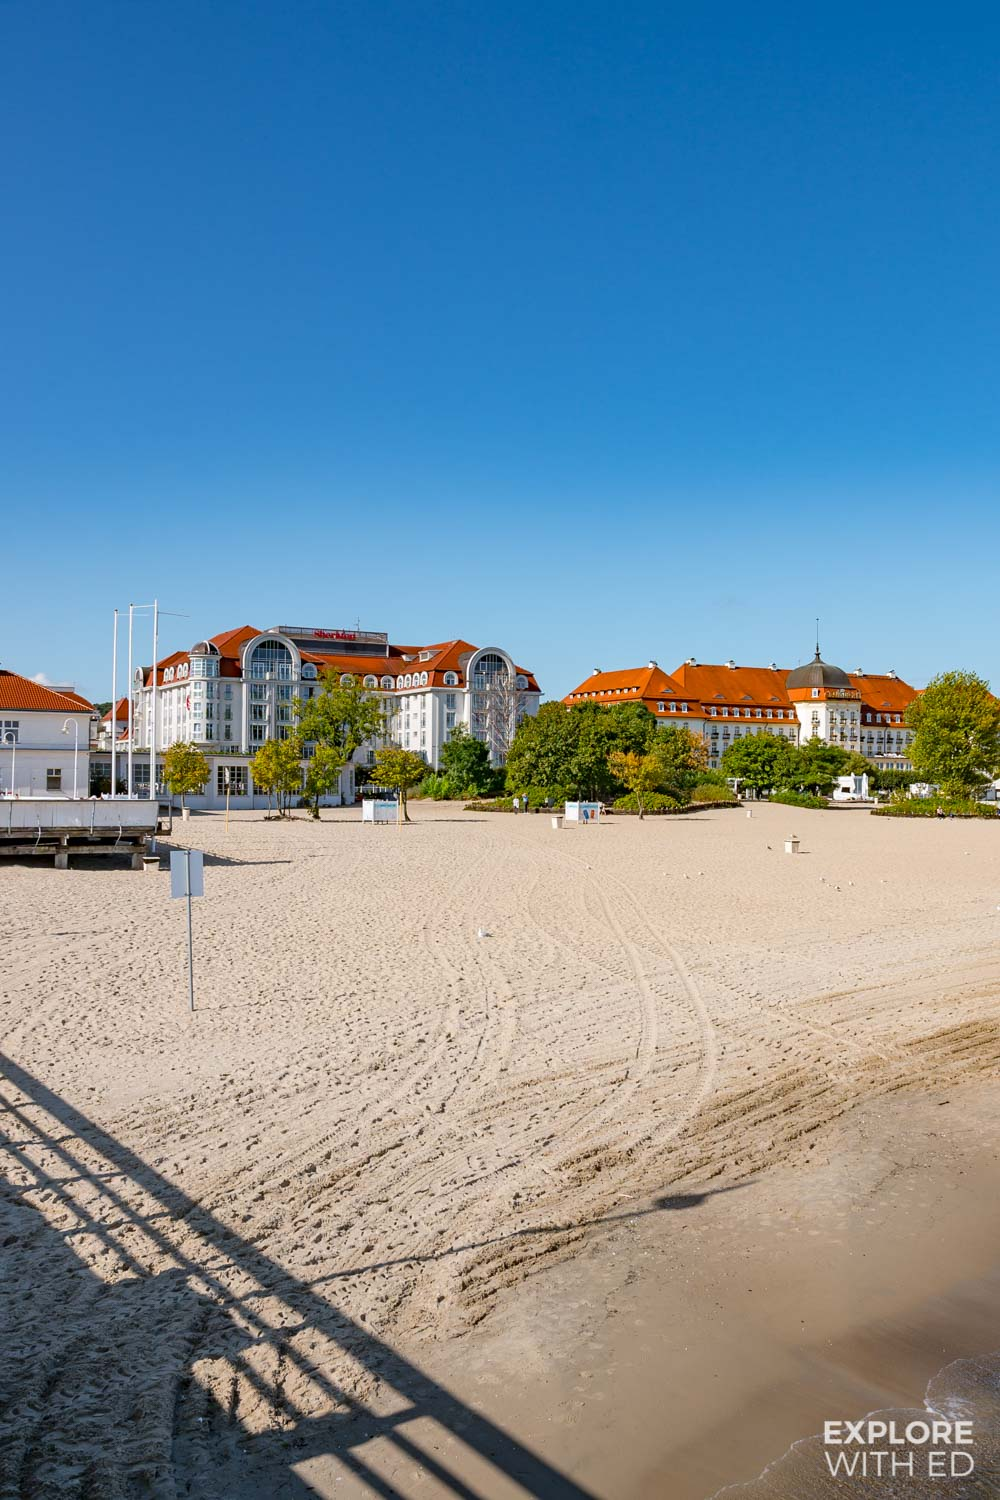 The Sheraton and Sofitel Grand Sopot Hotel on the beach